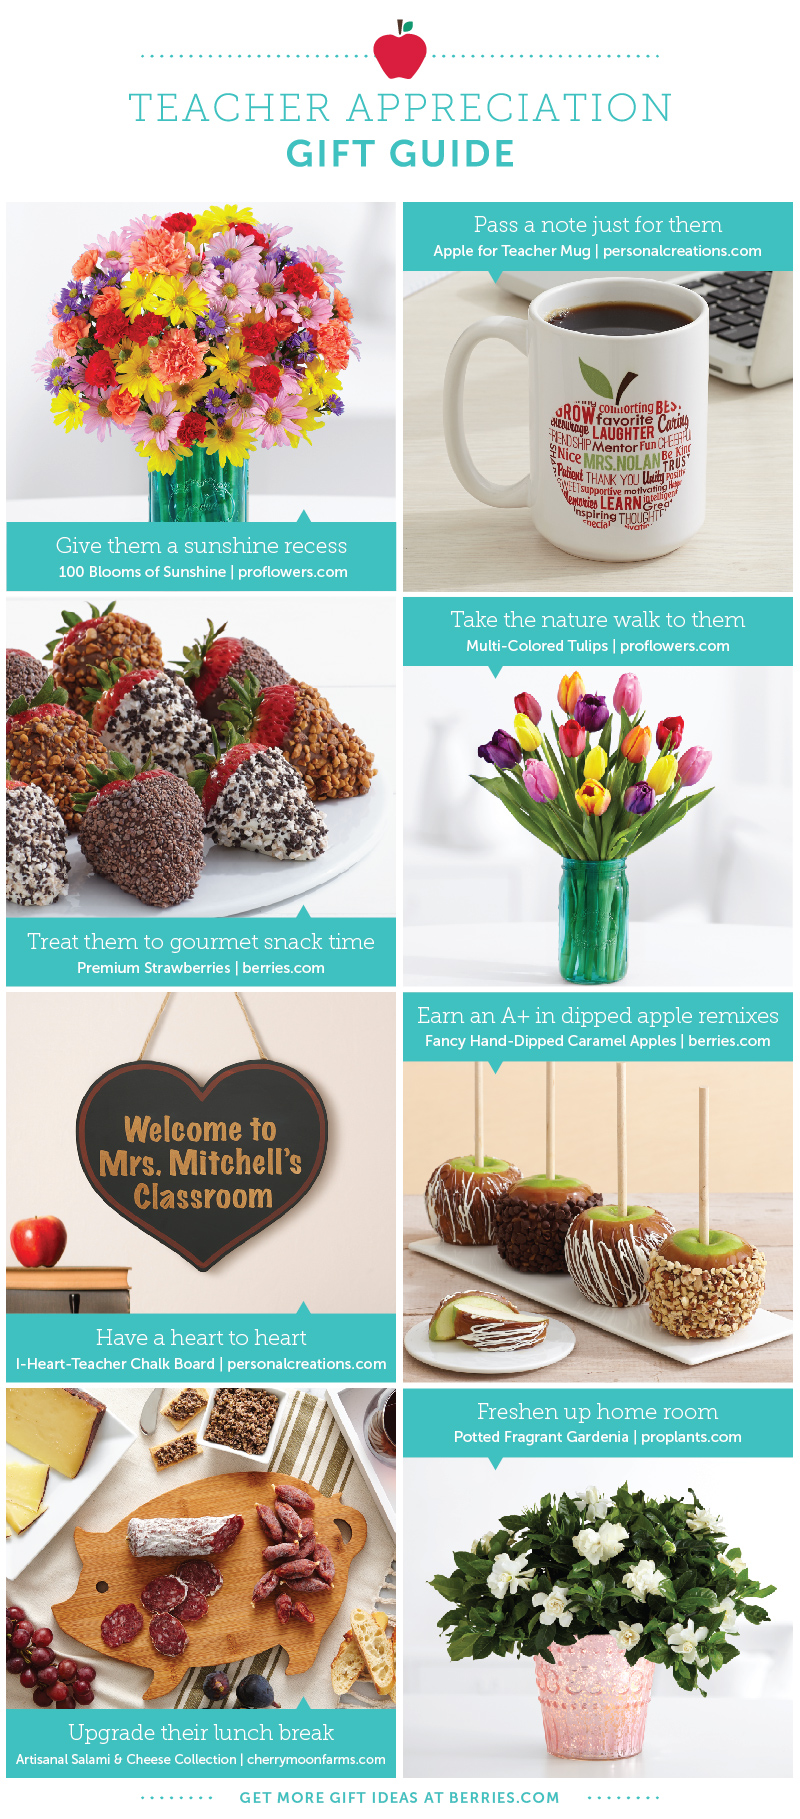 8 Great Gifts for Teachers - Shari's Berries Blog